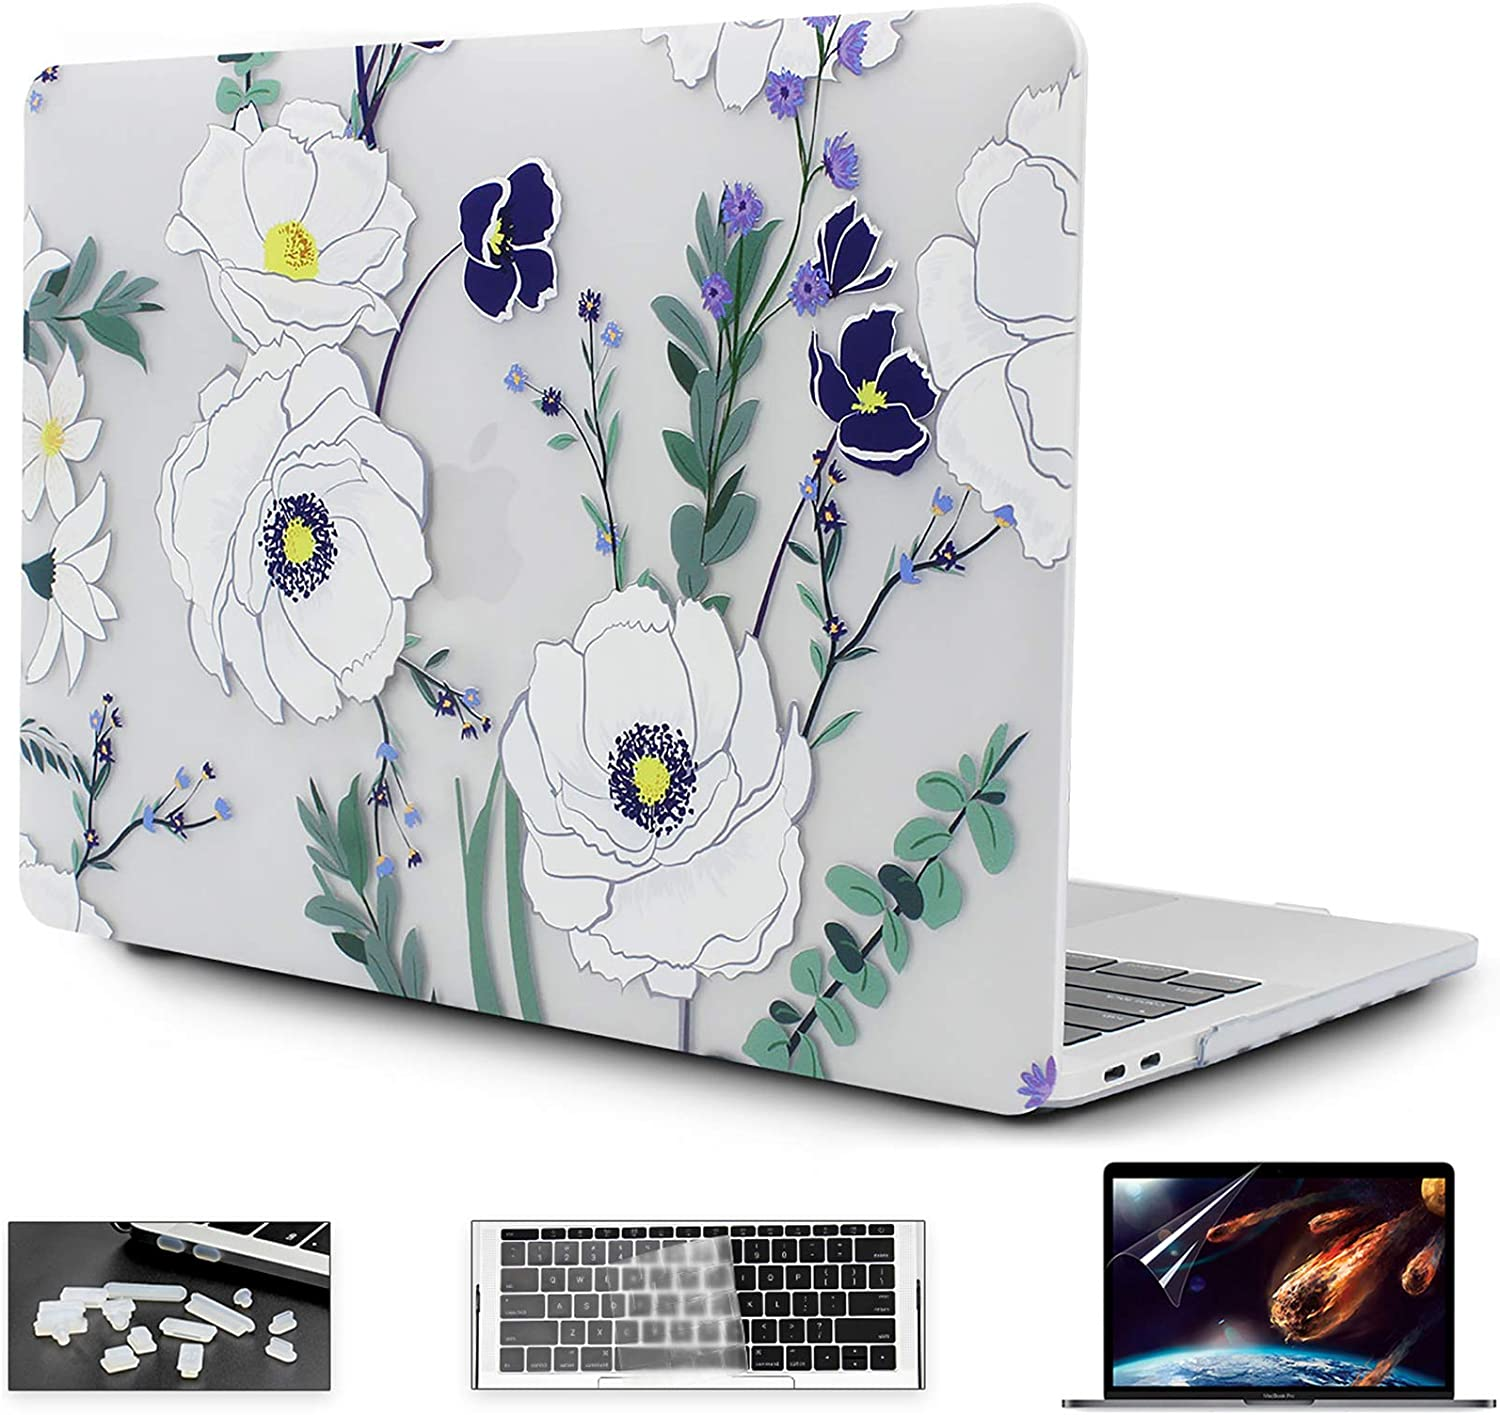 OneGET MacBook Air13 Inch Case 2018 Laptop Case MacBook Air13 inch A1932 Computer Case MacBook Air13 Inch Hard Shell Fashion MacBook Air13 Case Whith Touch ID Flowers (F1)